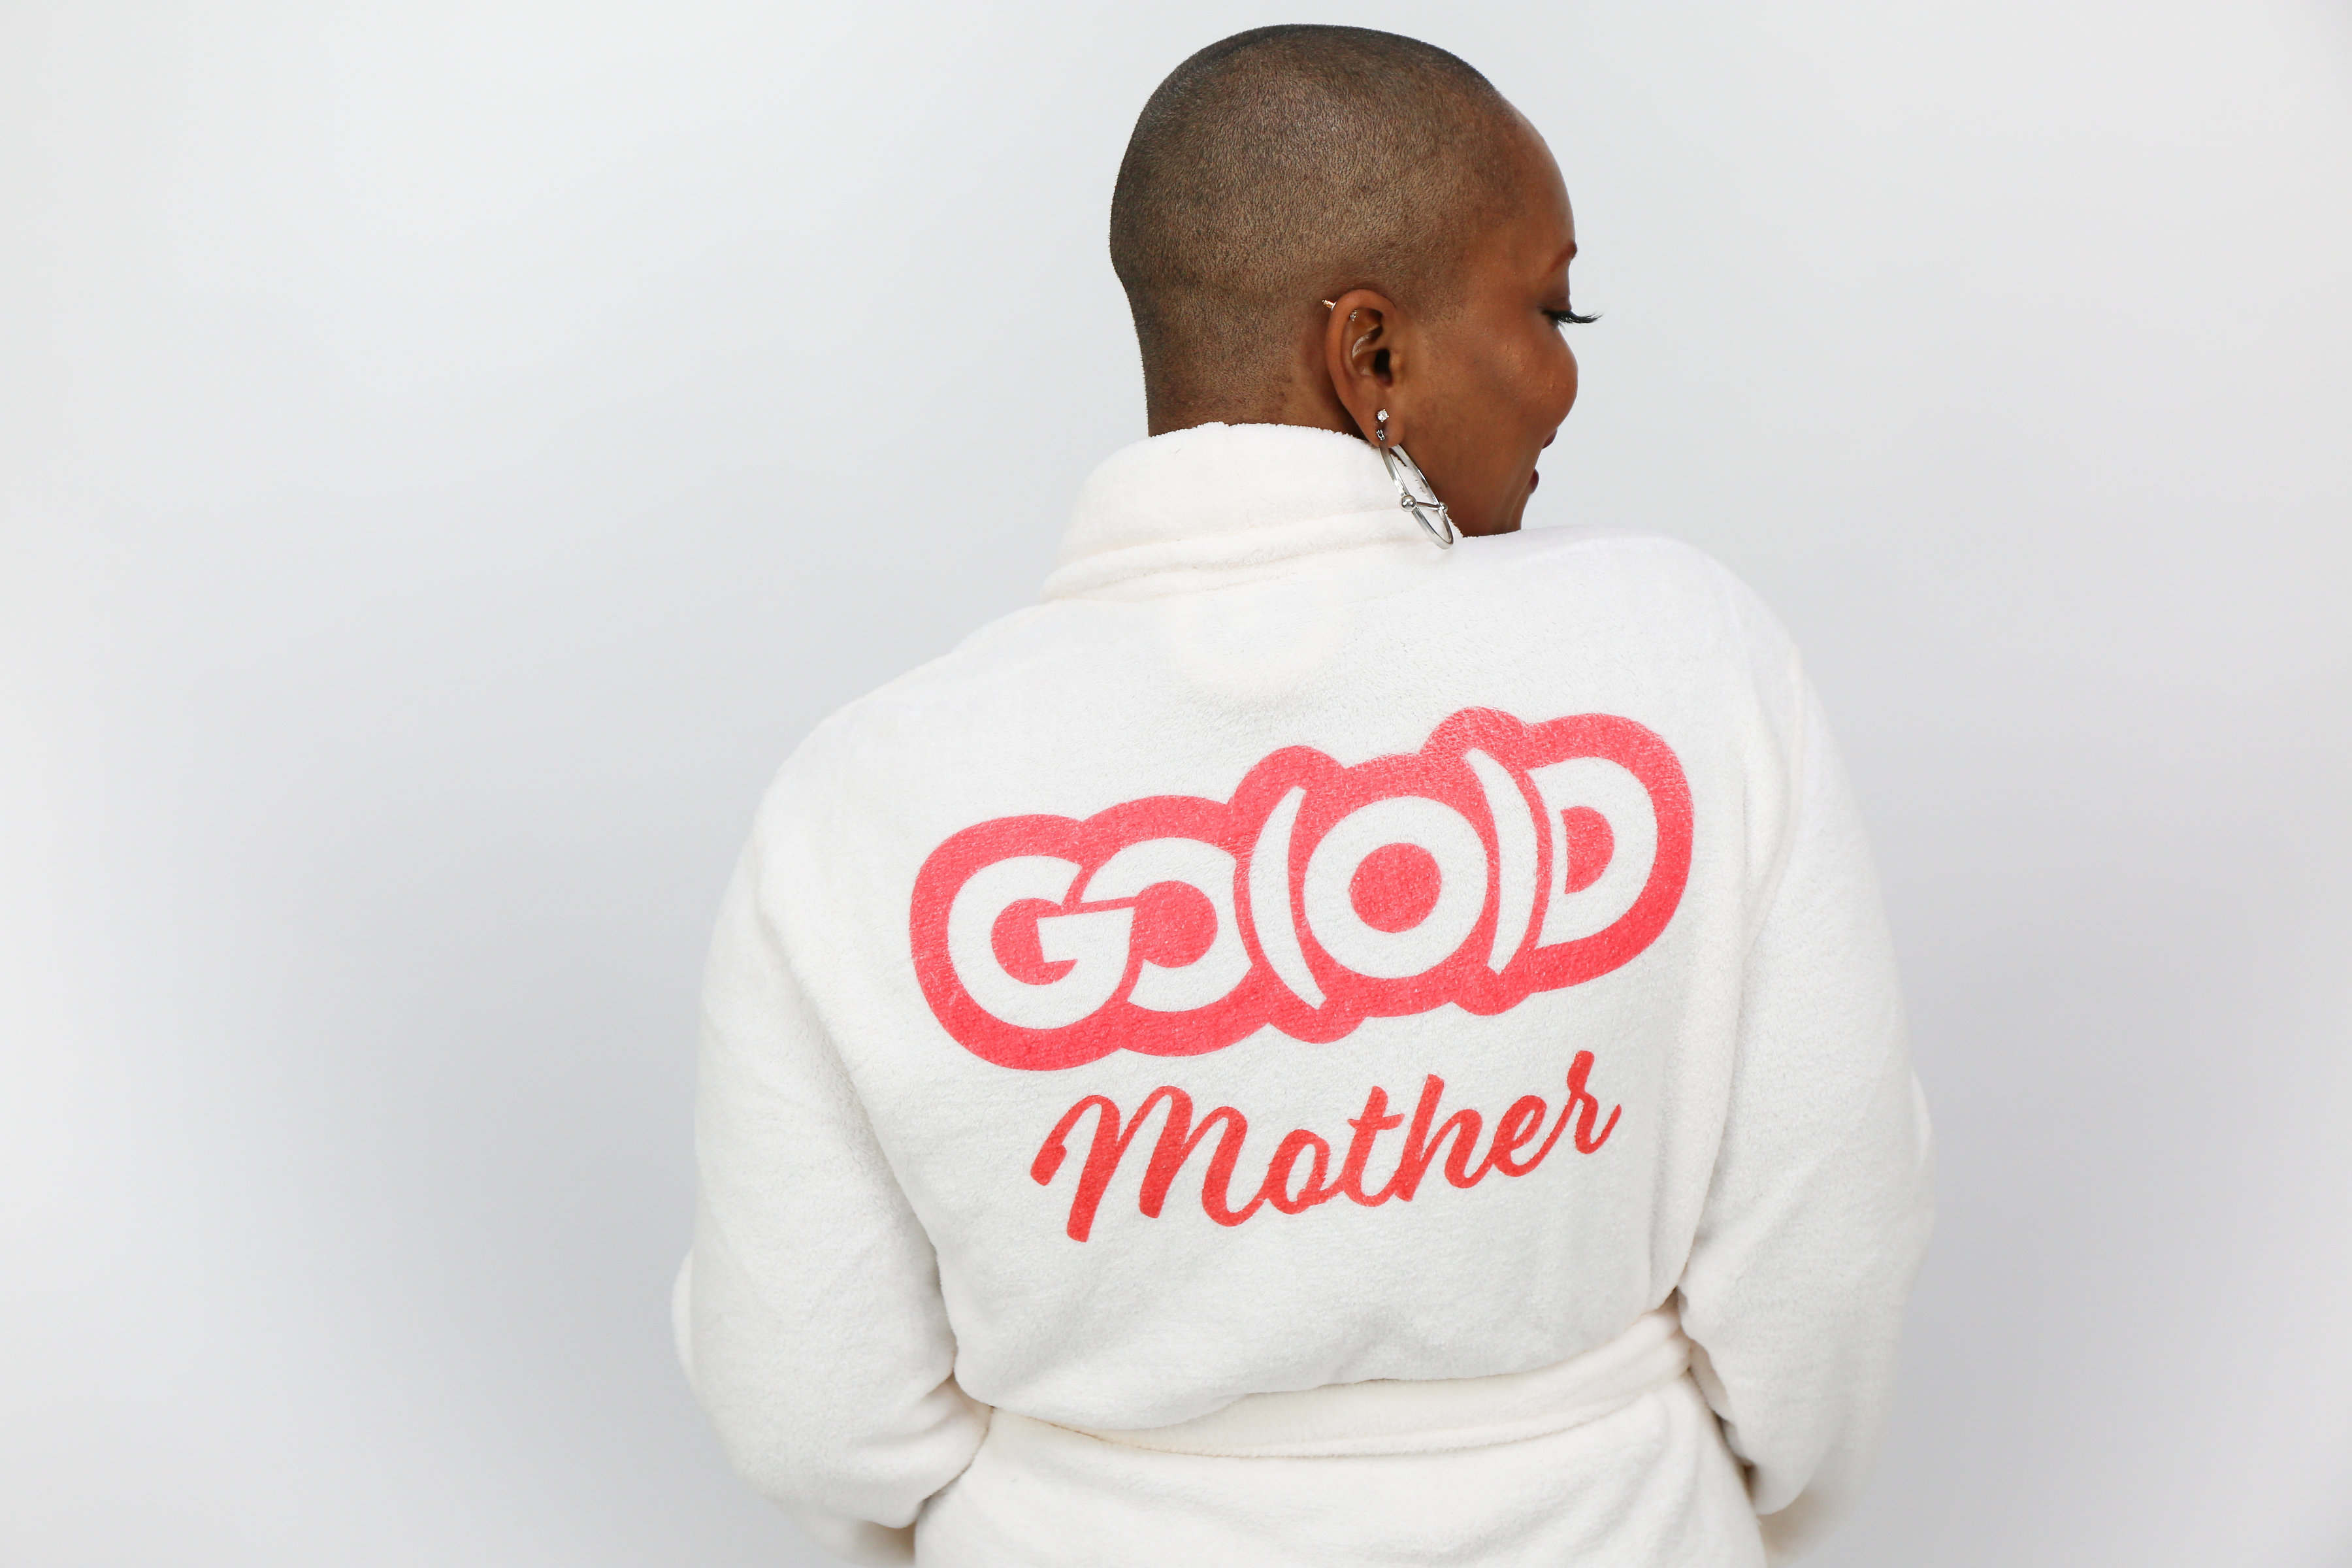 PLUSH GO(O)D Mother Robe-White/Red 00150